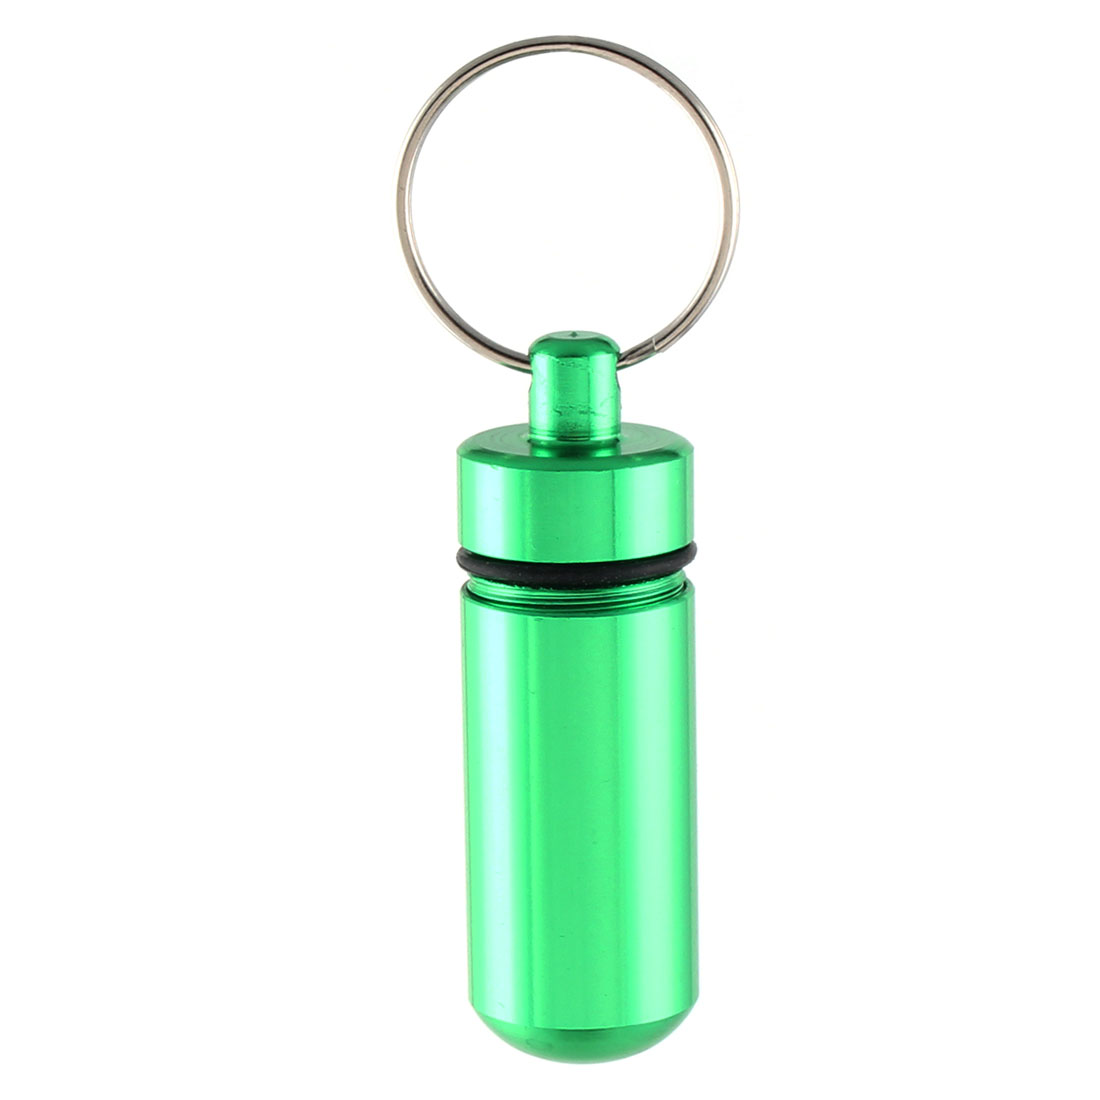 Green Metal Bottle Shaped Pendant Split Ring Keyring Handbag Purse Decoration